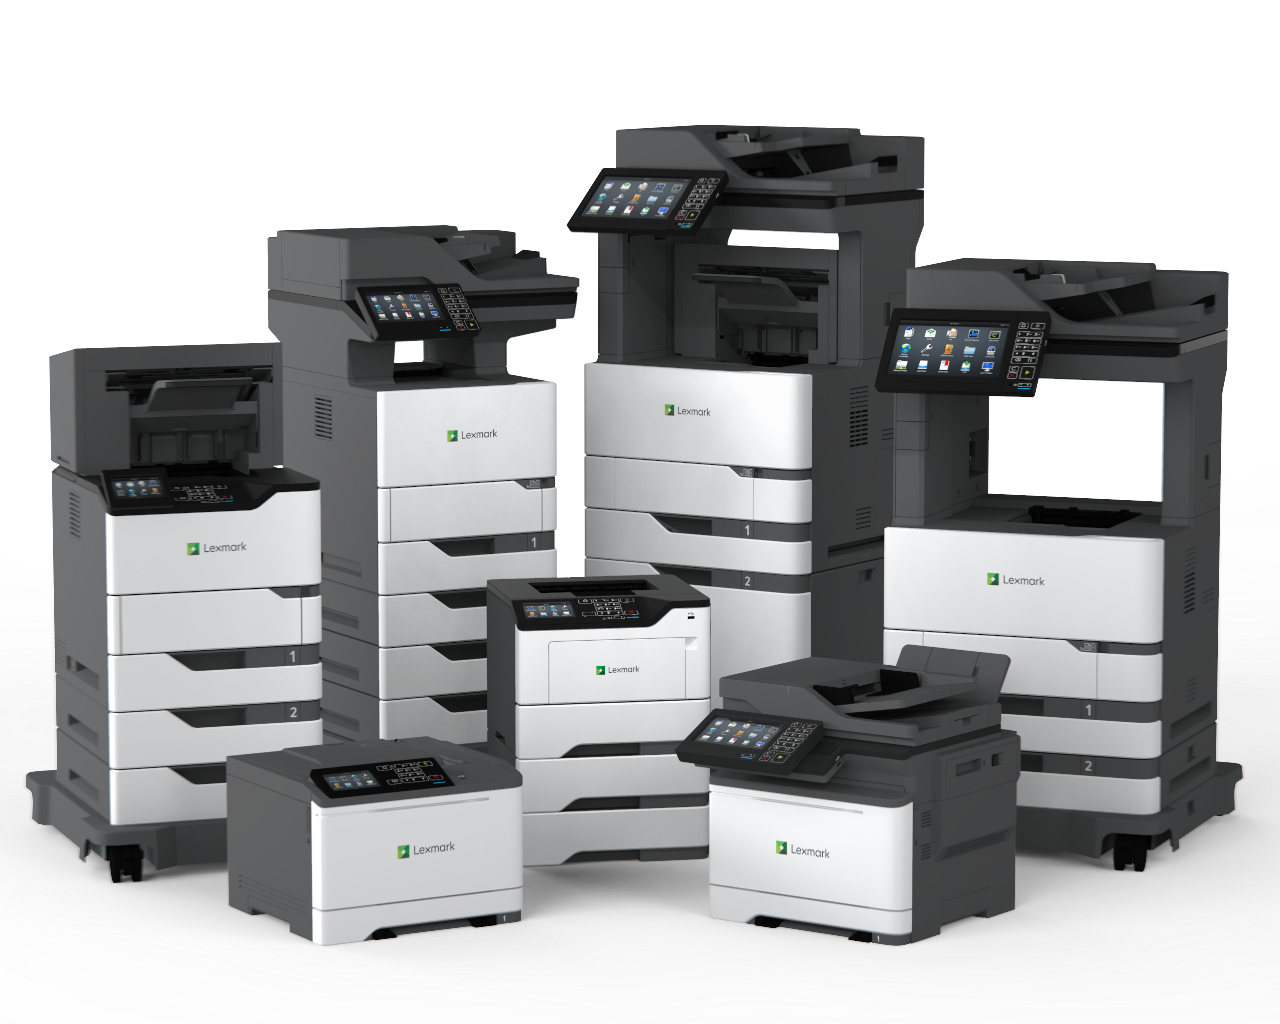 Lexmark recognized as 2019 BLI Printer/MFP Line of the Year